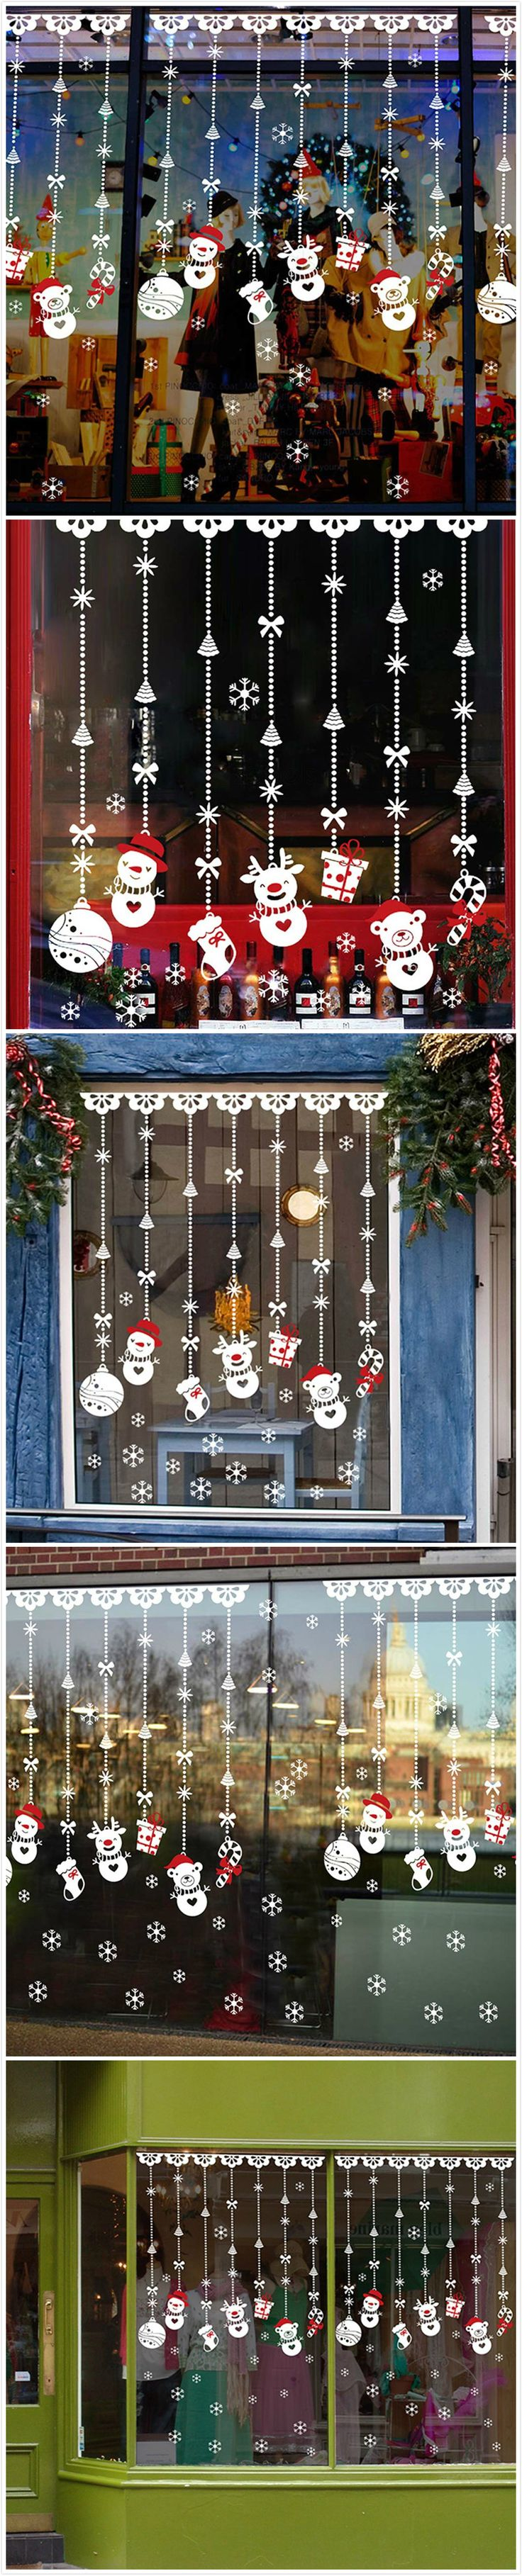 Car sticker design shop - Easy And Cute Christmas Decoration Idea Removable Window Stickers Including Snowman Socking Gift